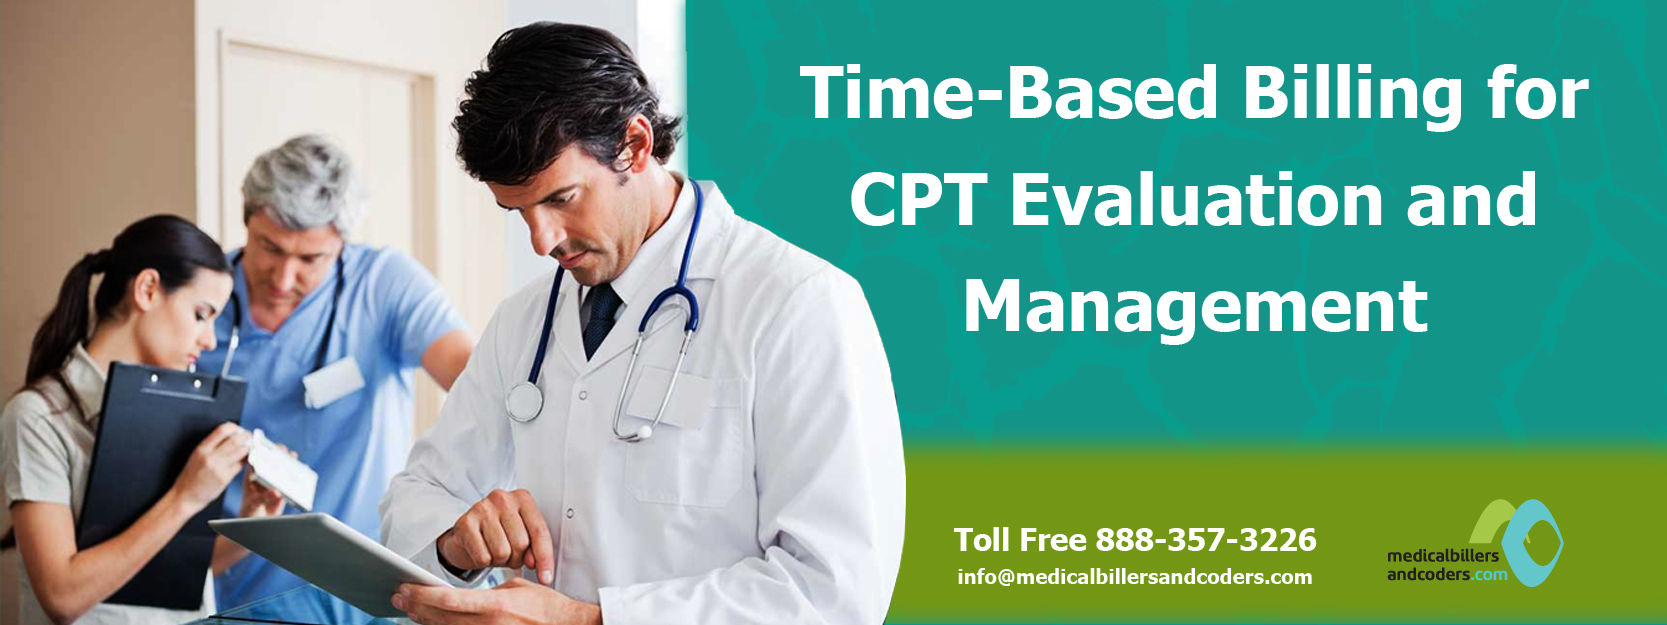 Time-Based Billing for CPT Evaluation and Management